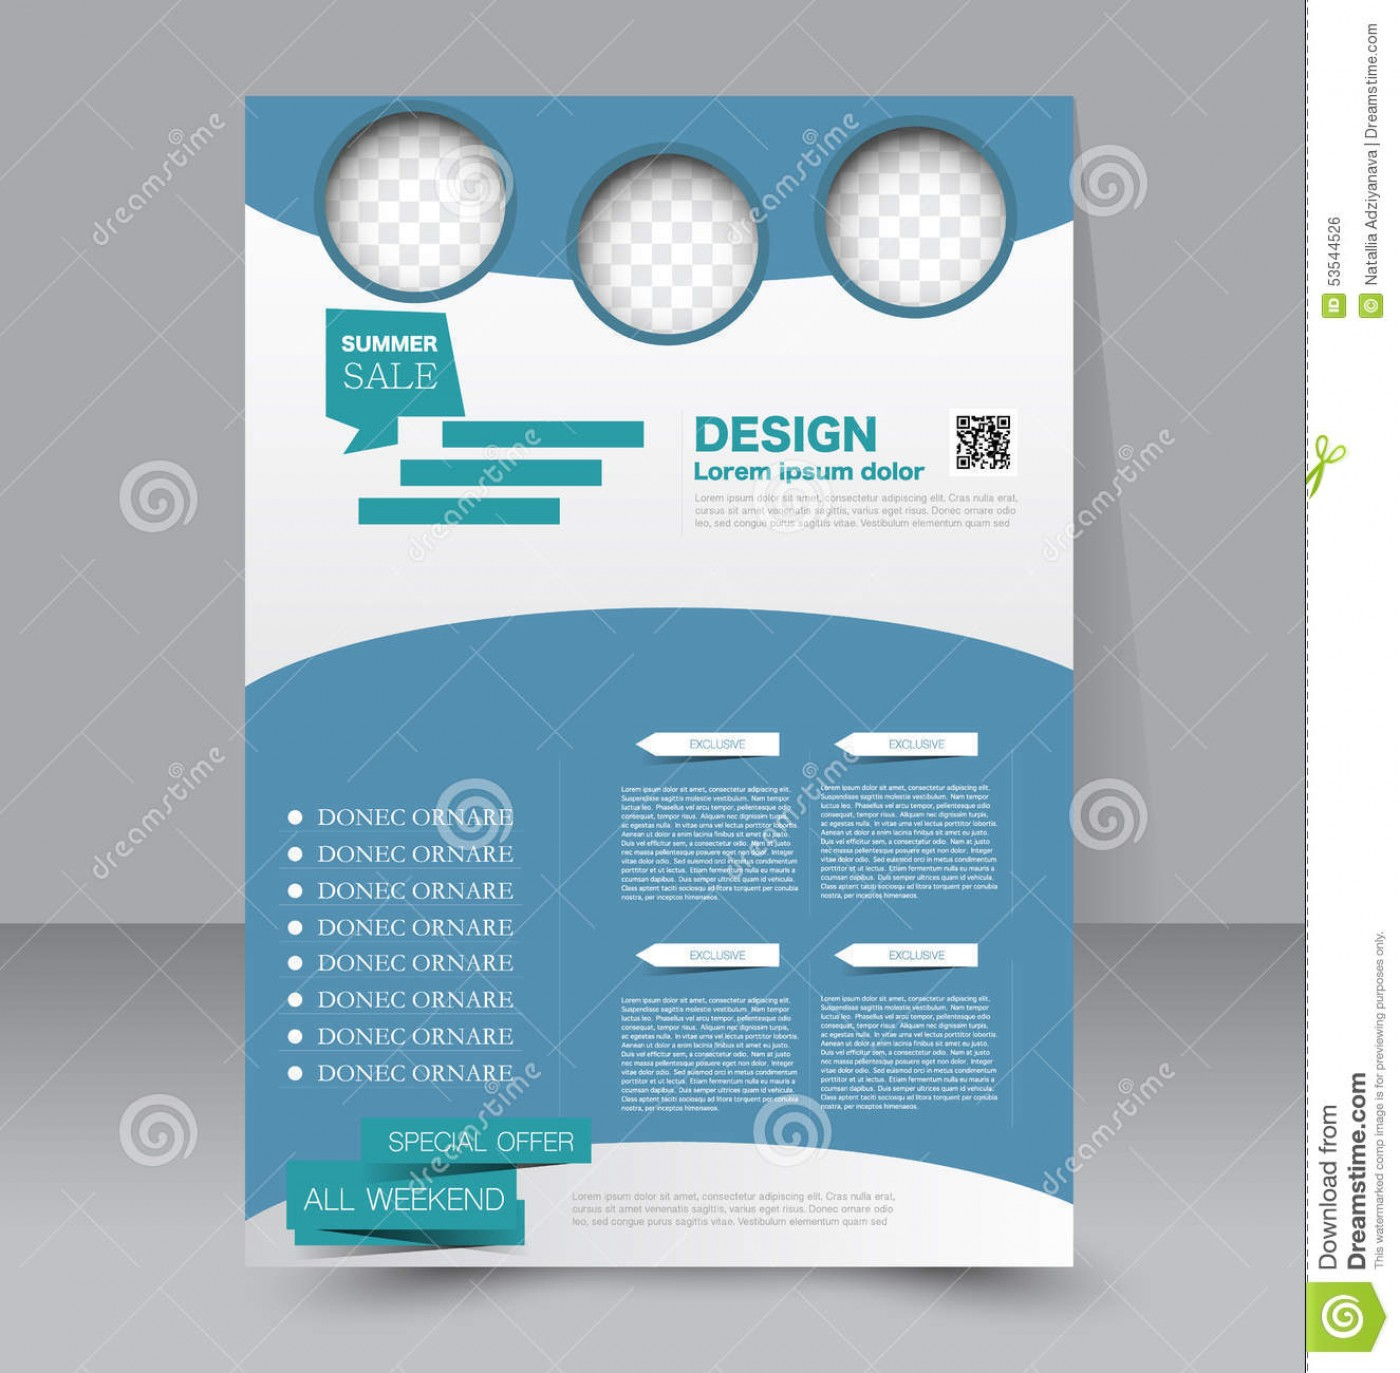 Editable Flyer Design Templates Free Download